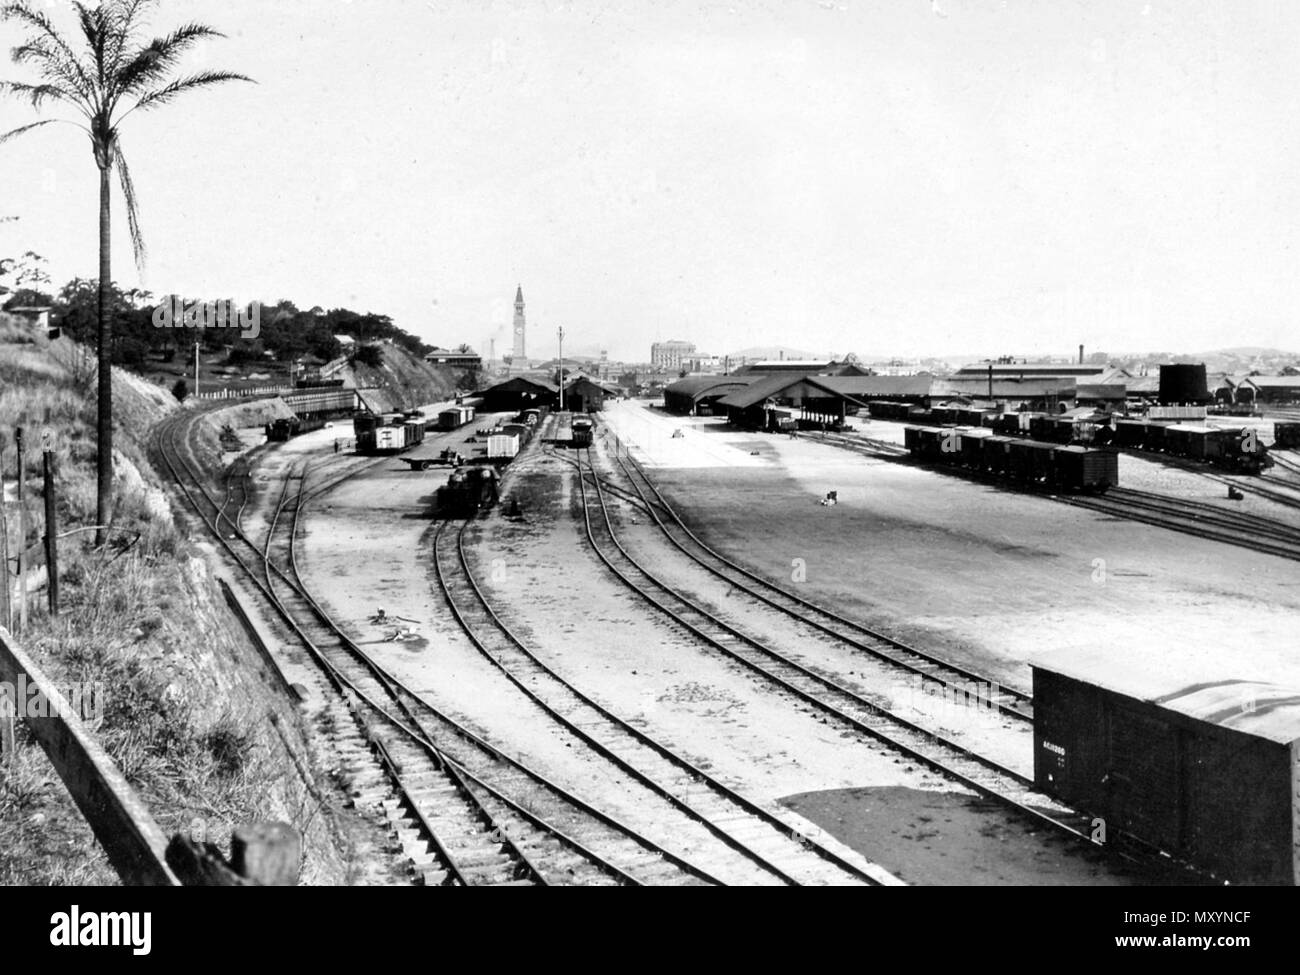 New Goods Yard at Roma Street Railway Station, c 1936. The Courier Mail Sat 6 Oct 1934  TRAINS COLLIDE AT ROMA STREET Engine Derailed Driver and Friemen Suspended  With a crash that could be heard for hundreds of yards, a goods train and an empty passenger train came into collision at the Southern end of the Roma Street goods yards early yesterday morning. The engine of the passenger train was badly derailed, its front portion being extensively damaged, and several waggons on the goods train received slight damage. No one was injured.   The collision occurred about 7.30am, the trains involved  - Stock Image